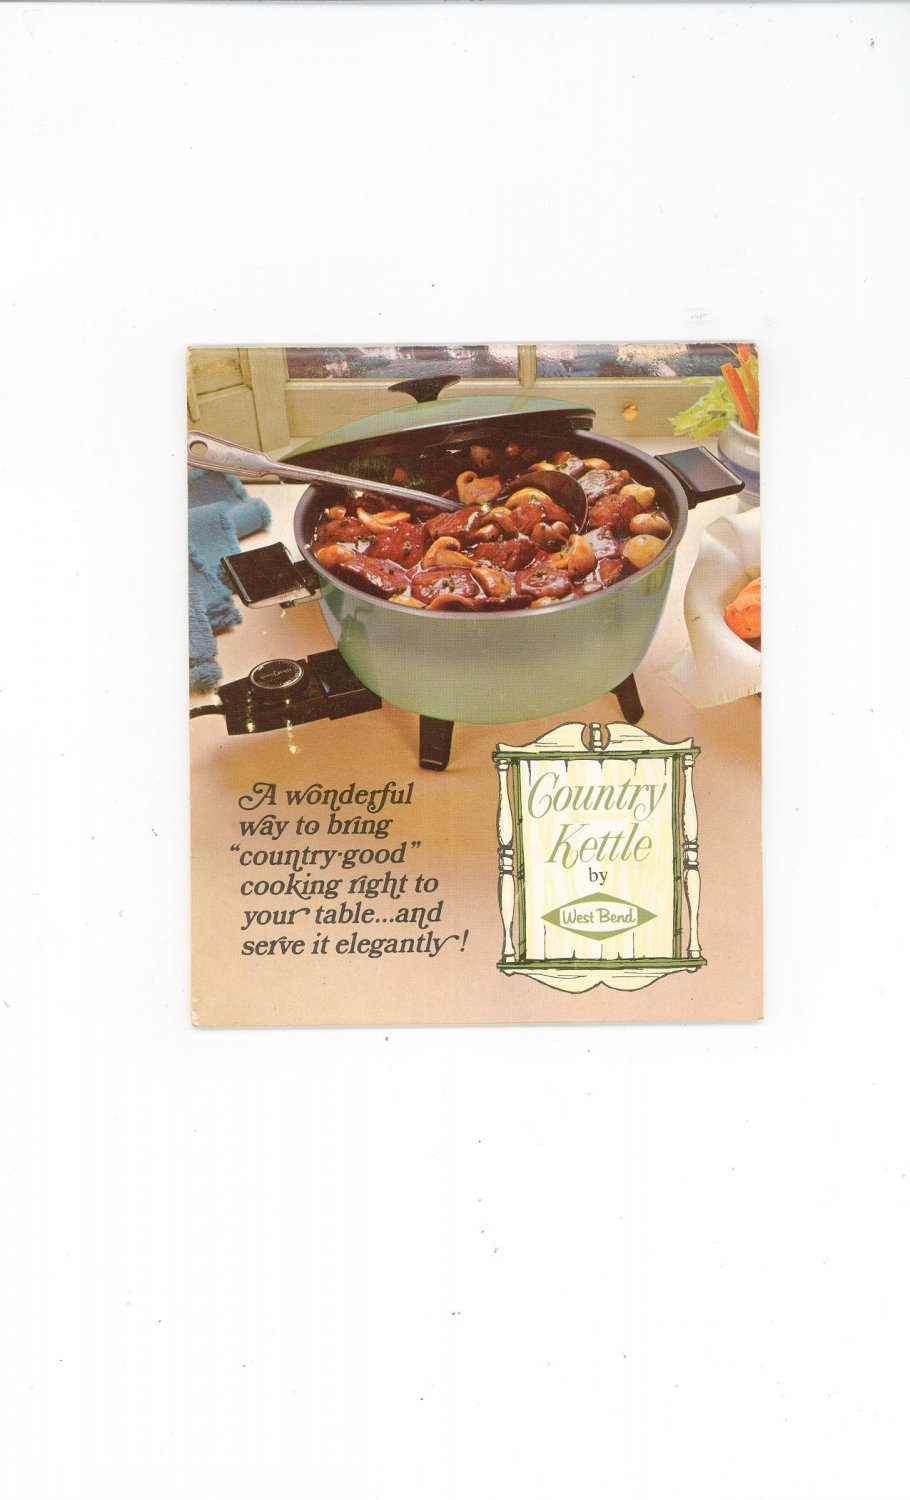 Vintage Country Kettle By West Bend Instructions And Recipes Cookbook 1970's